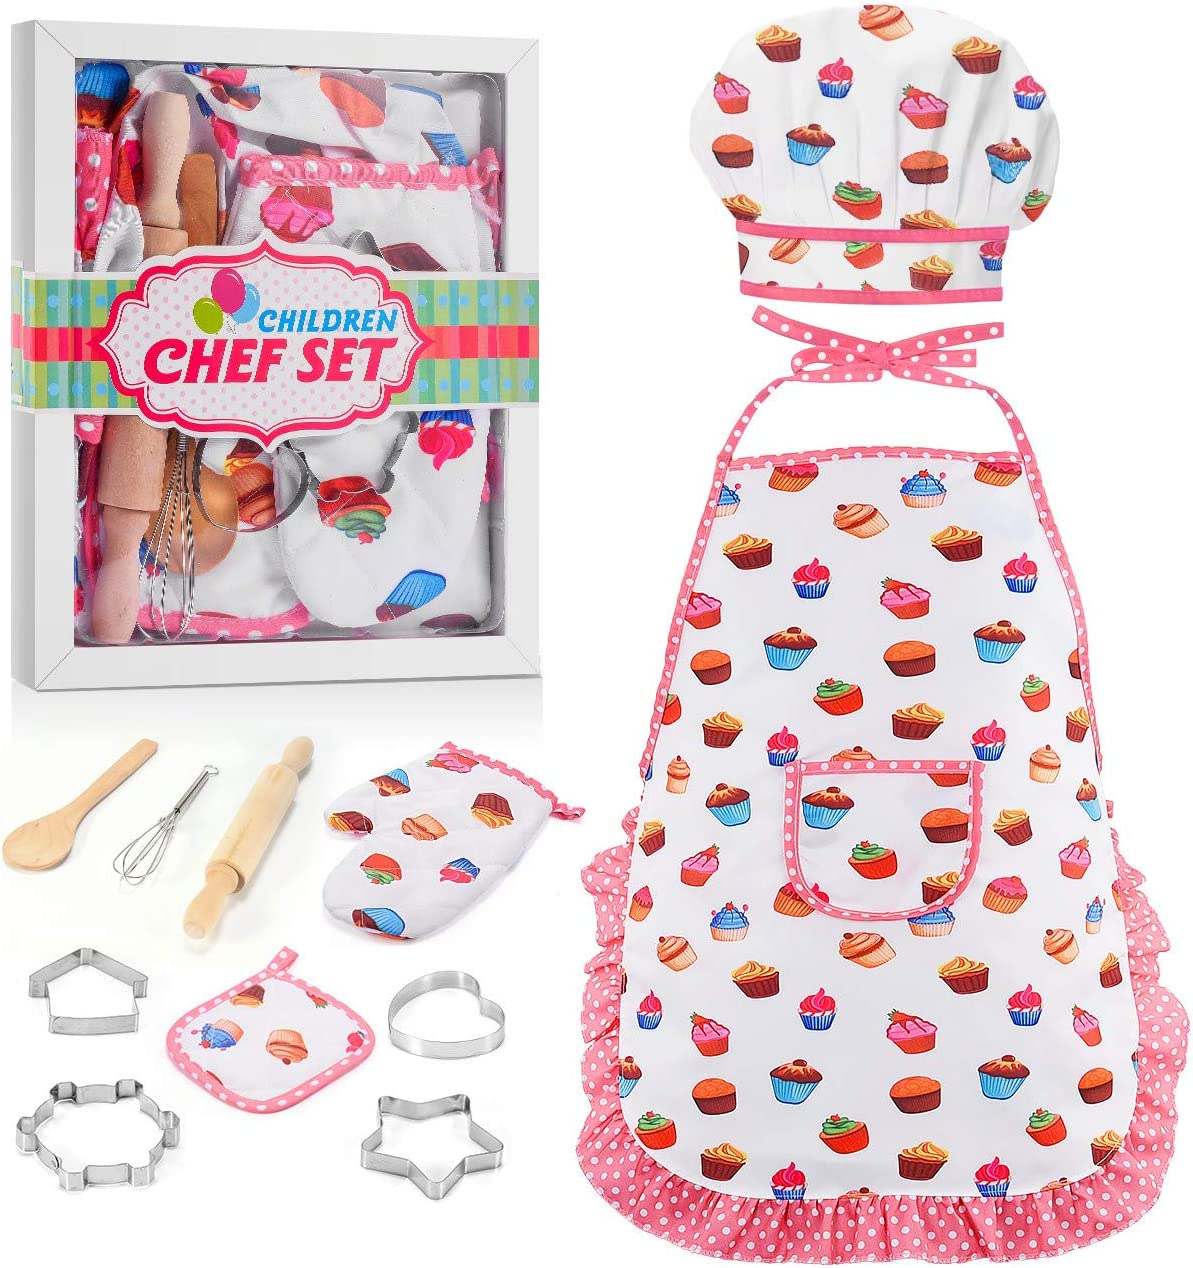 Rolling Pin Oven Mitt Plates QAQGEAR 130 Pcs Childrens Cake Cooking Baking Apron Cake Mold Set Chef Role Play Costume Toddler Apron and Chef Hat Girl Dress Up Includes Apron Pot Holders